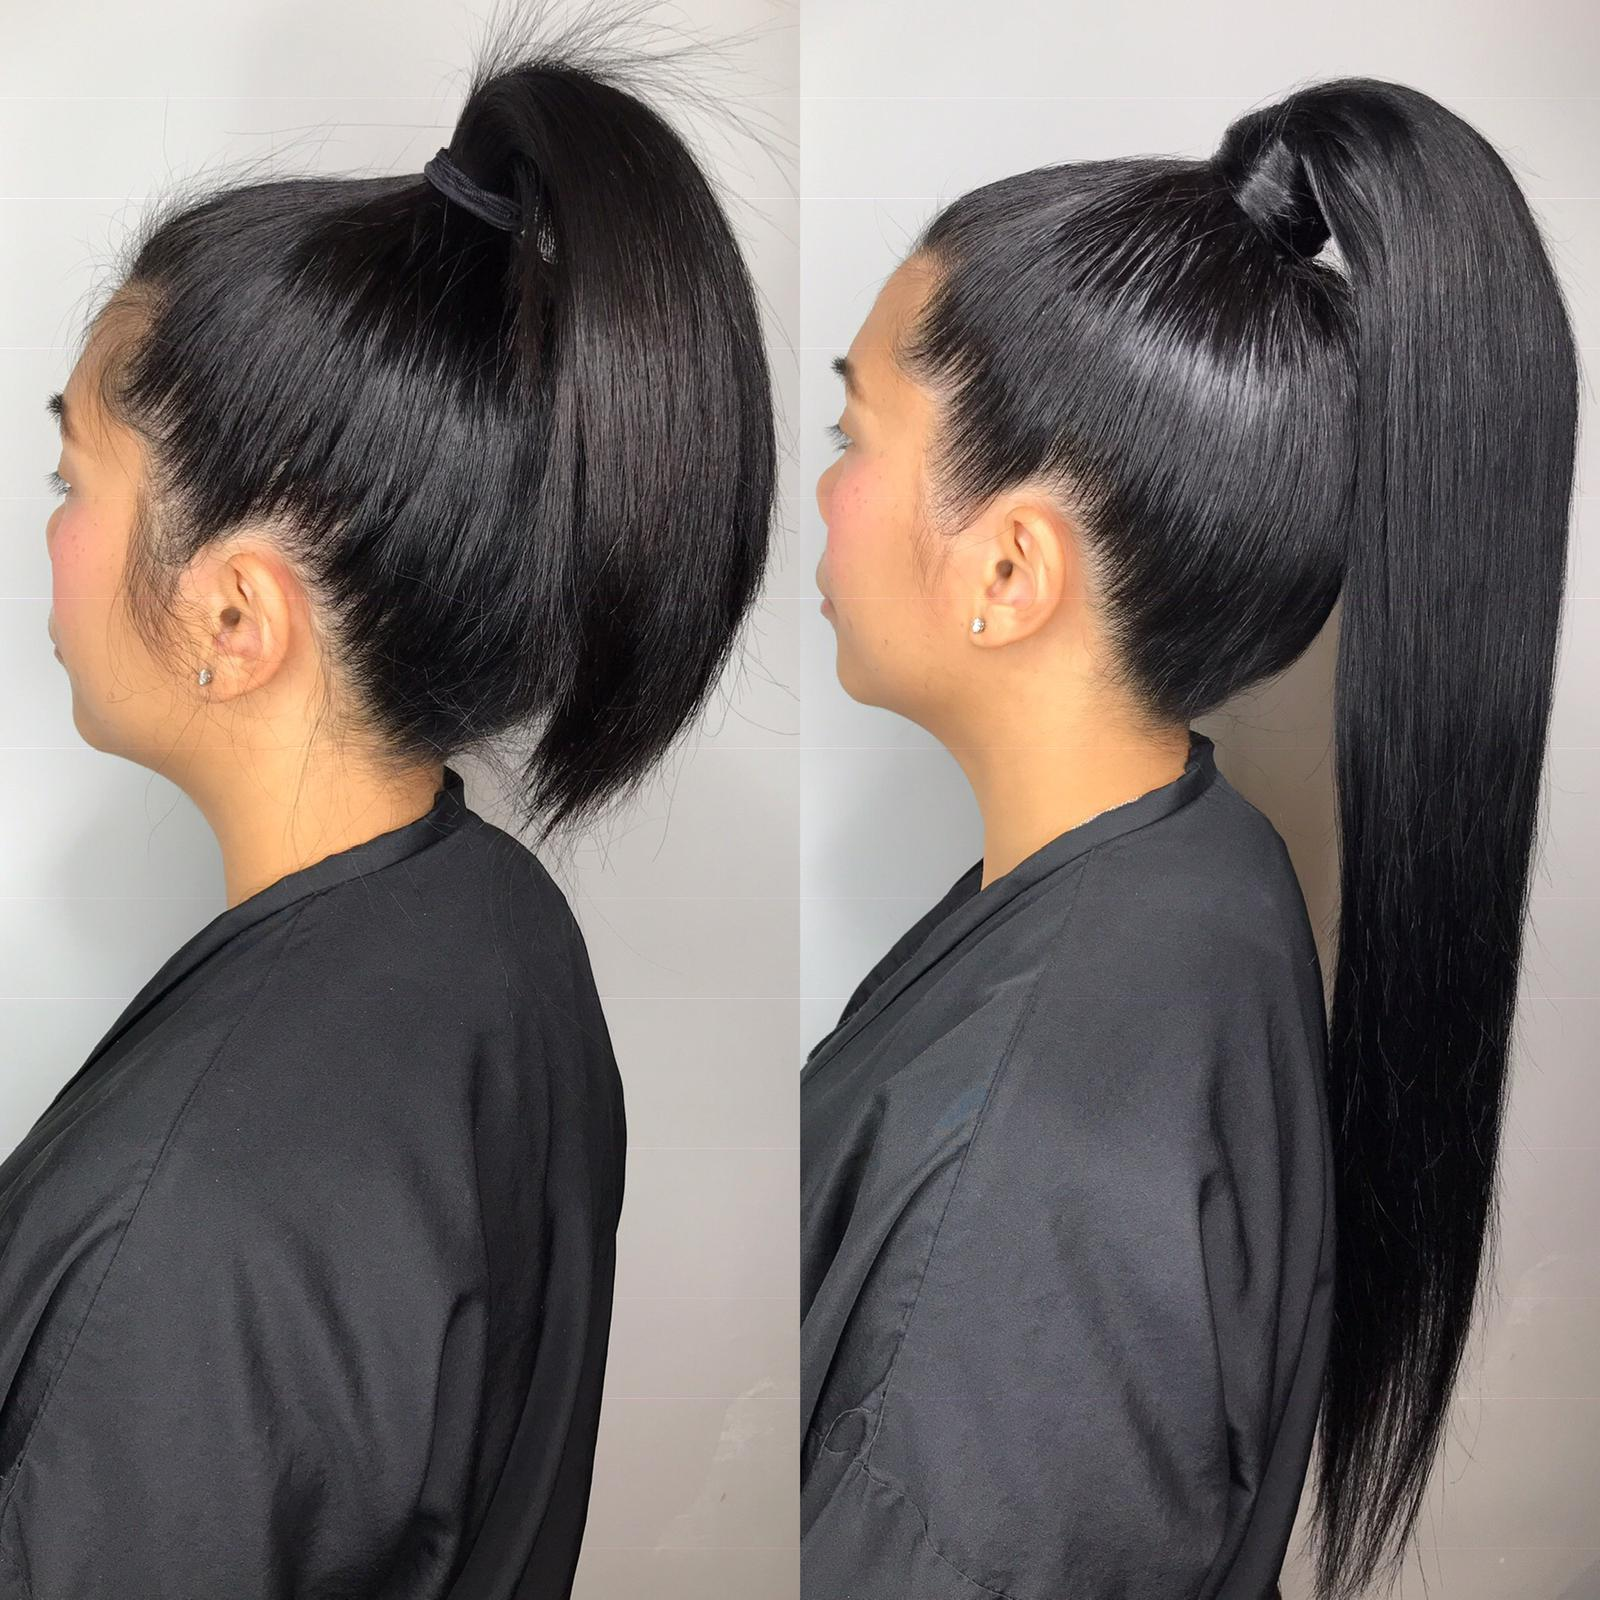 Ponytail Clip-in - Golden key